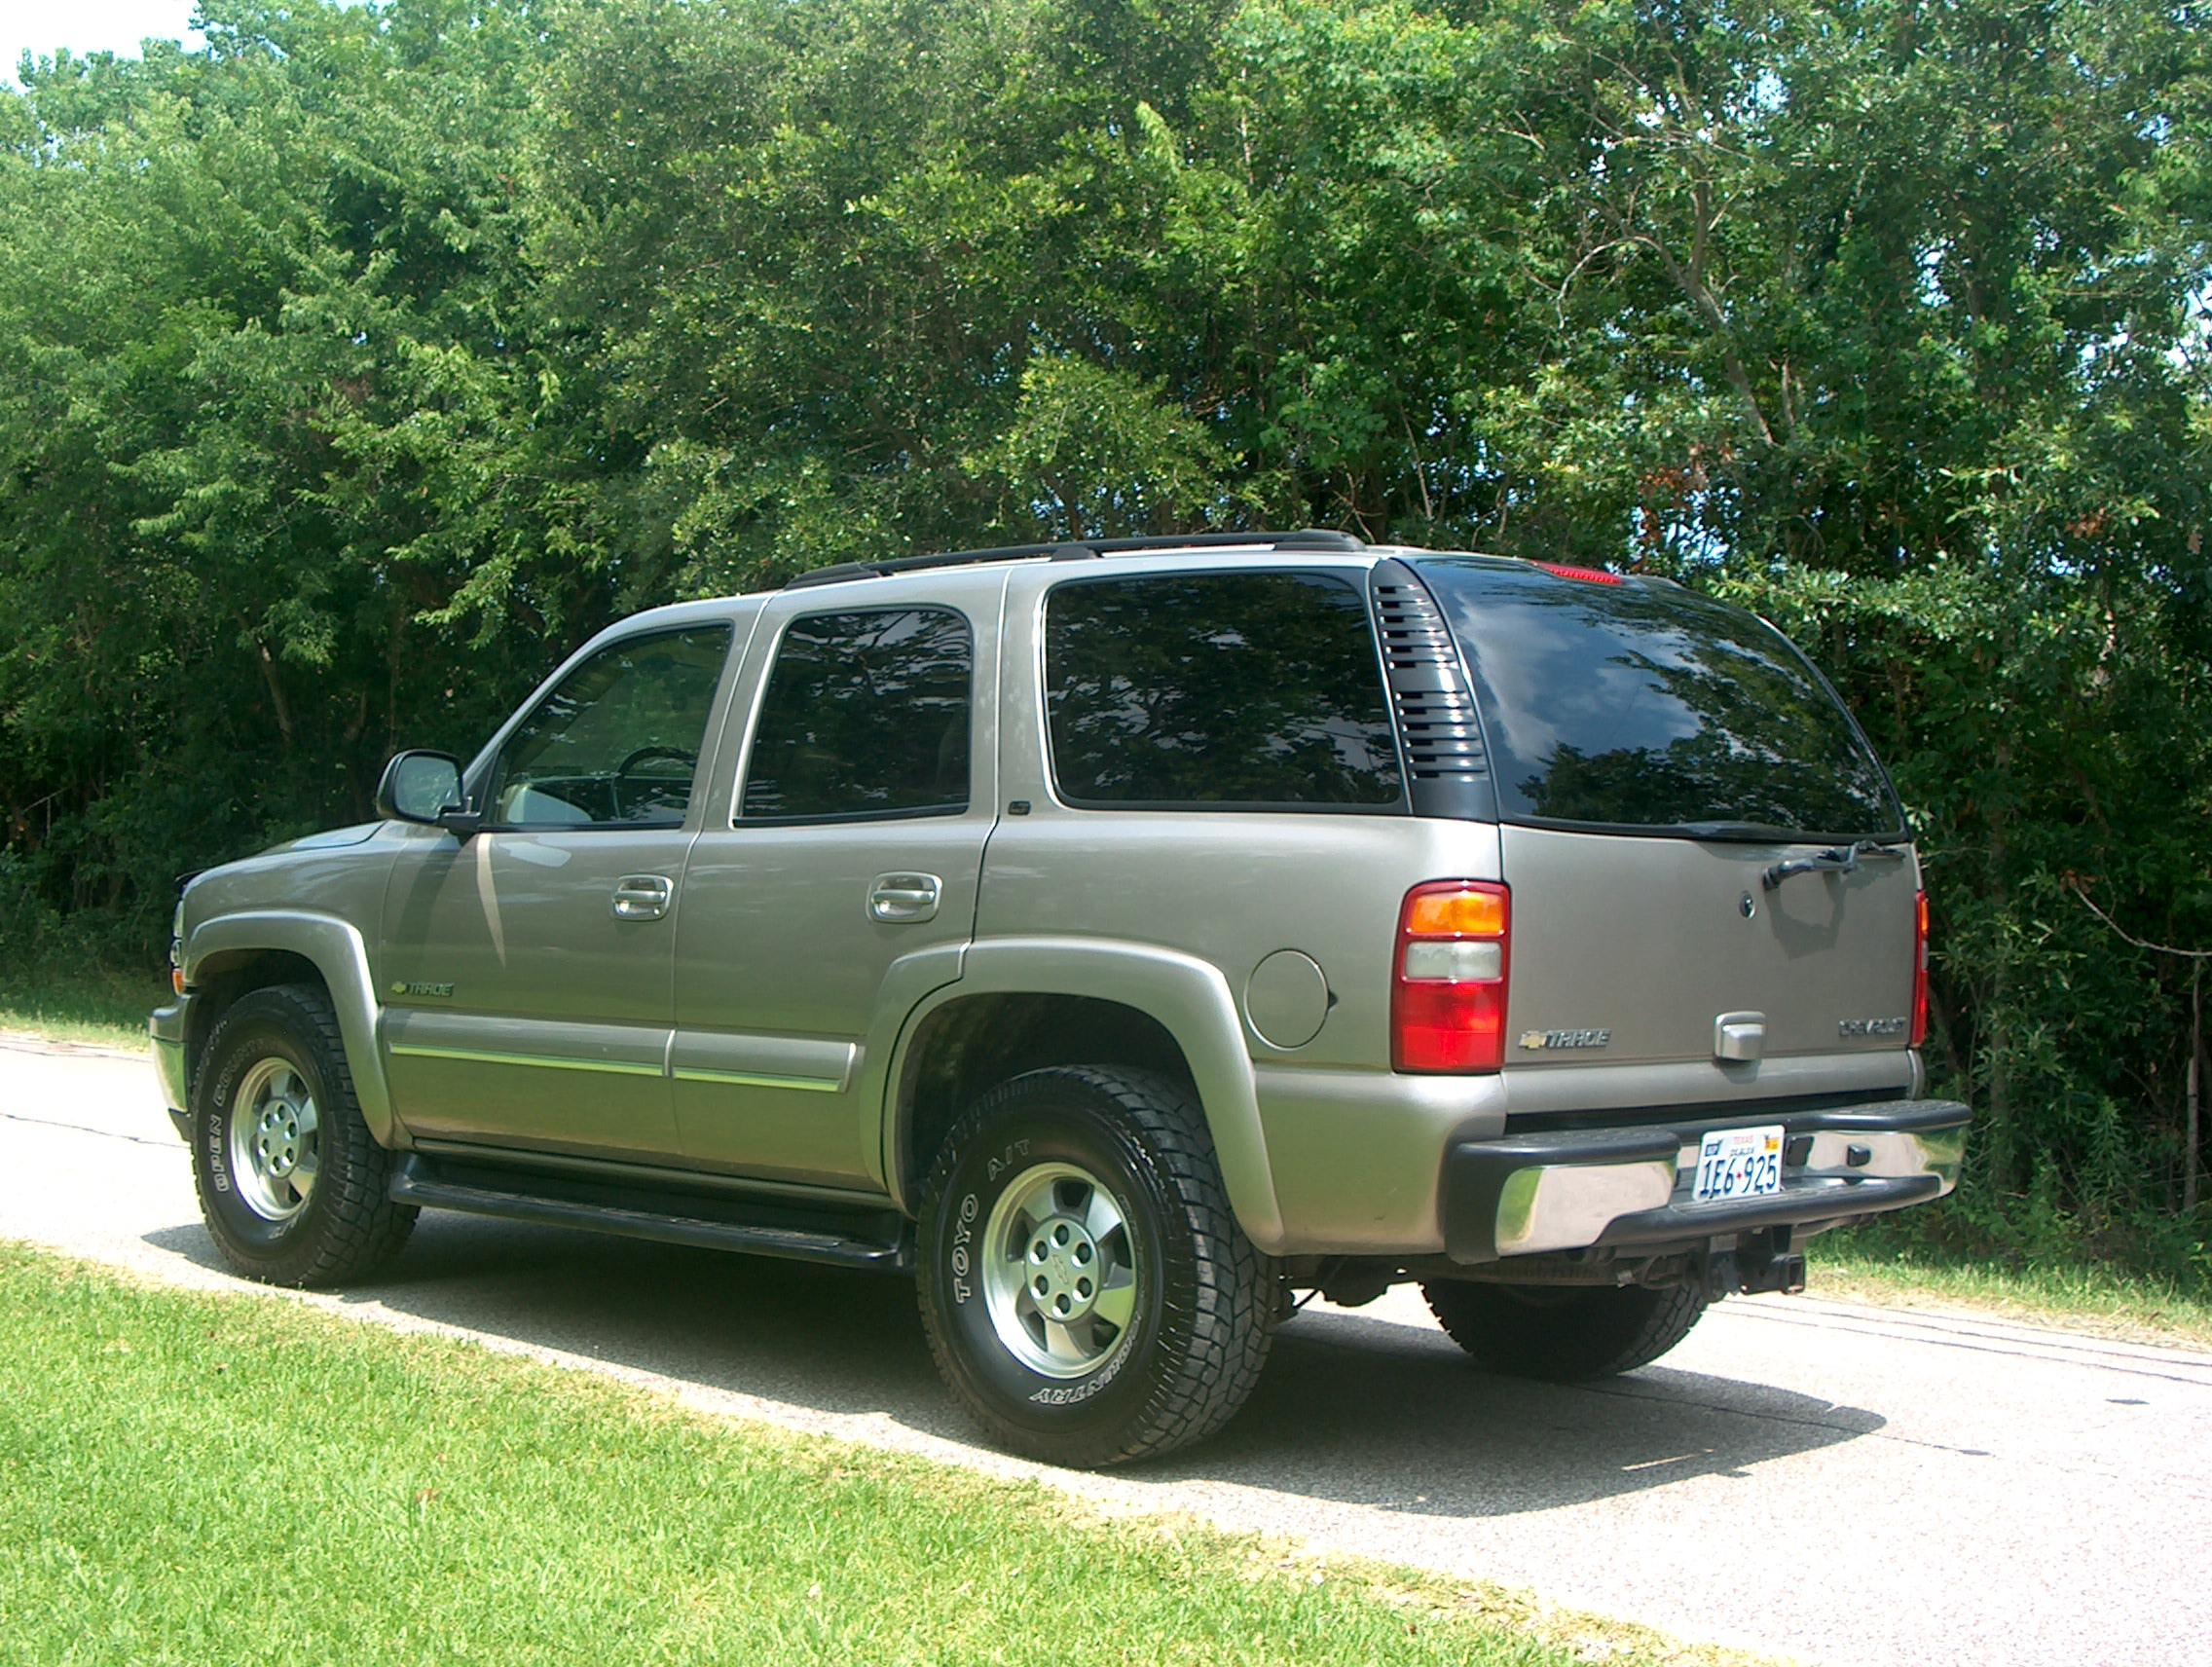 Chevrolet Tahoe photo 25150